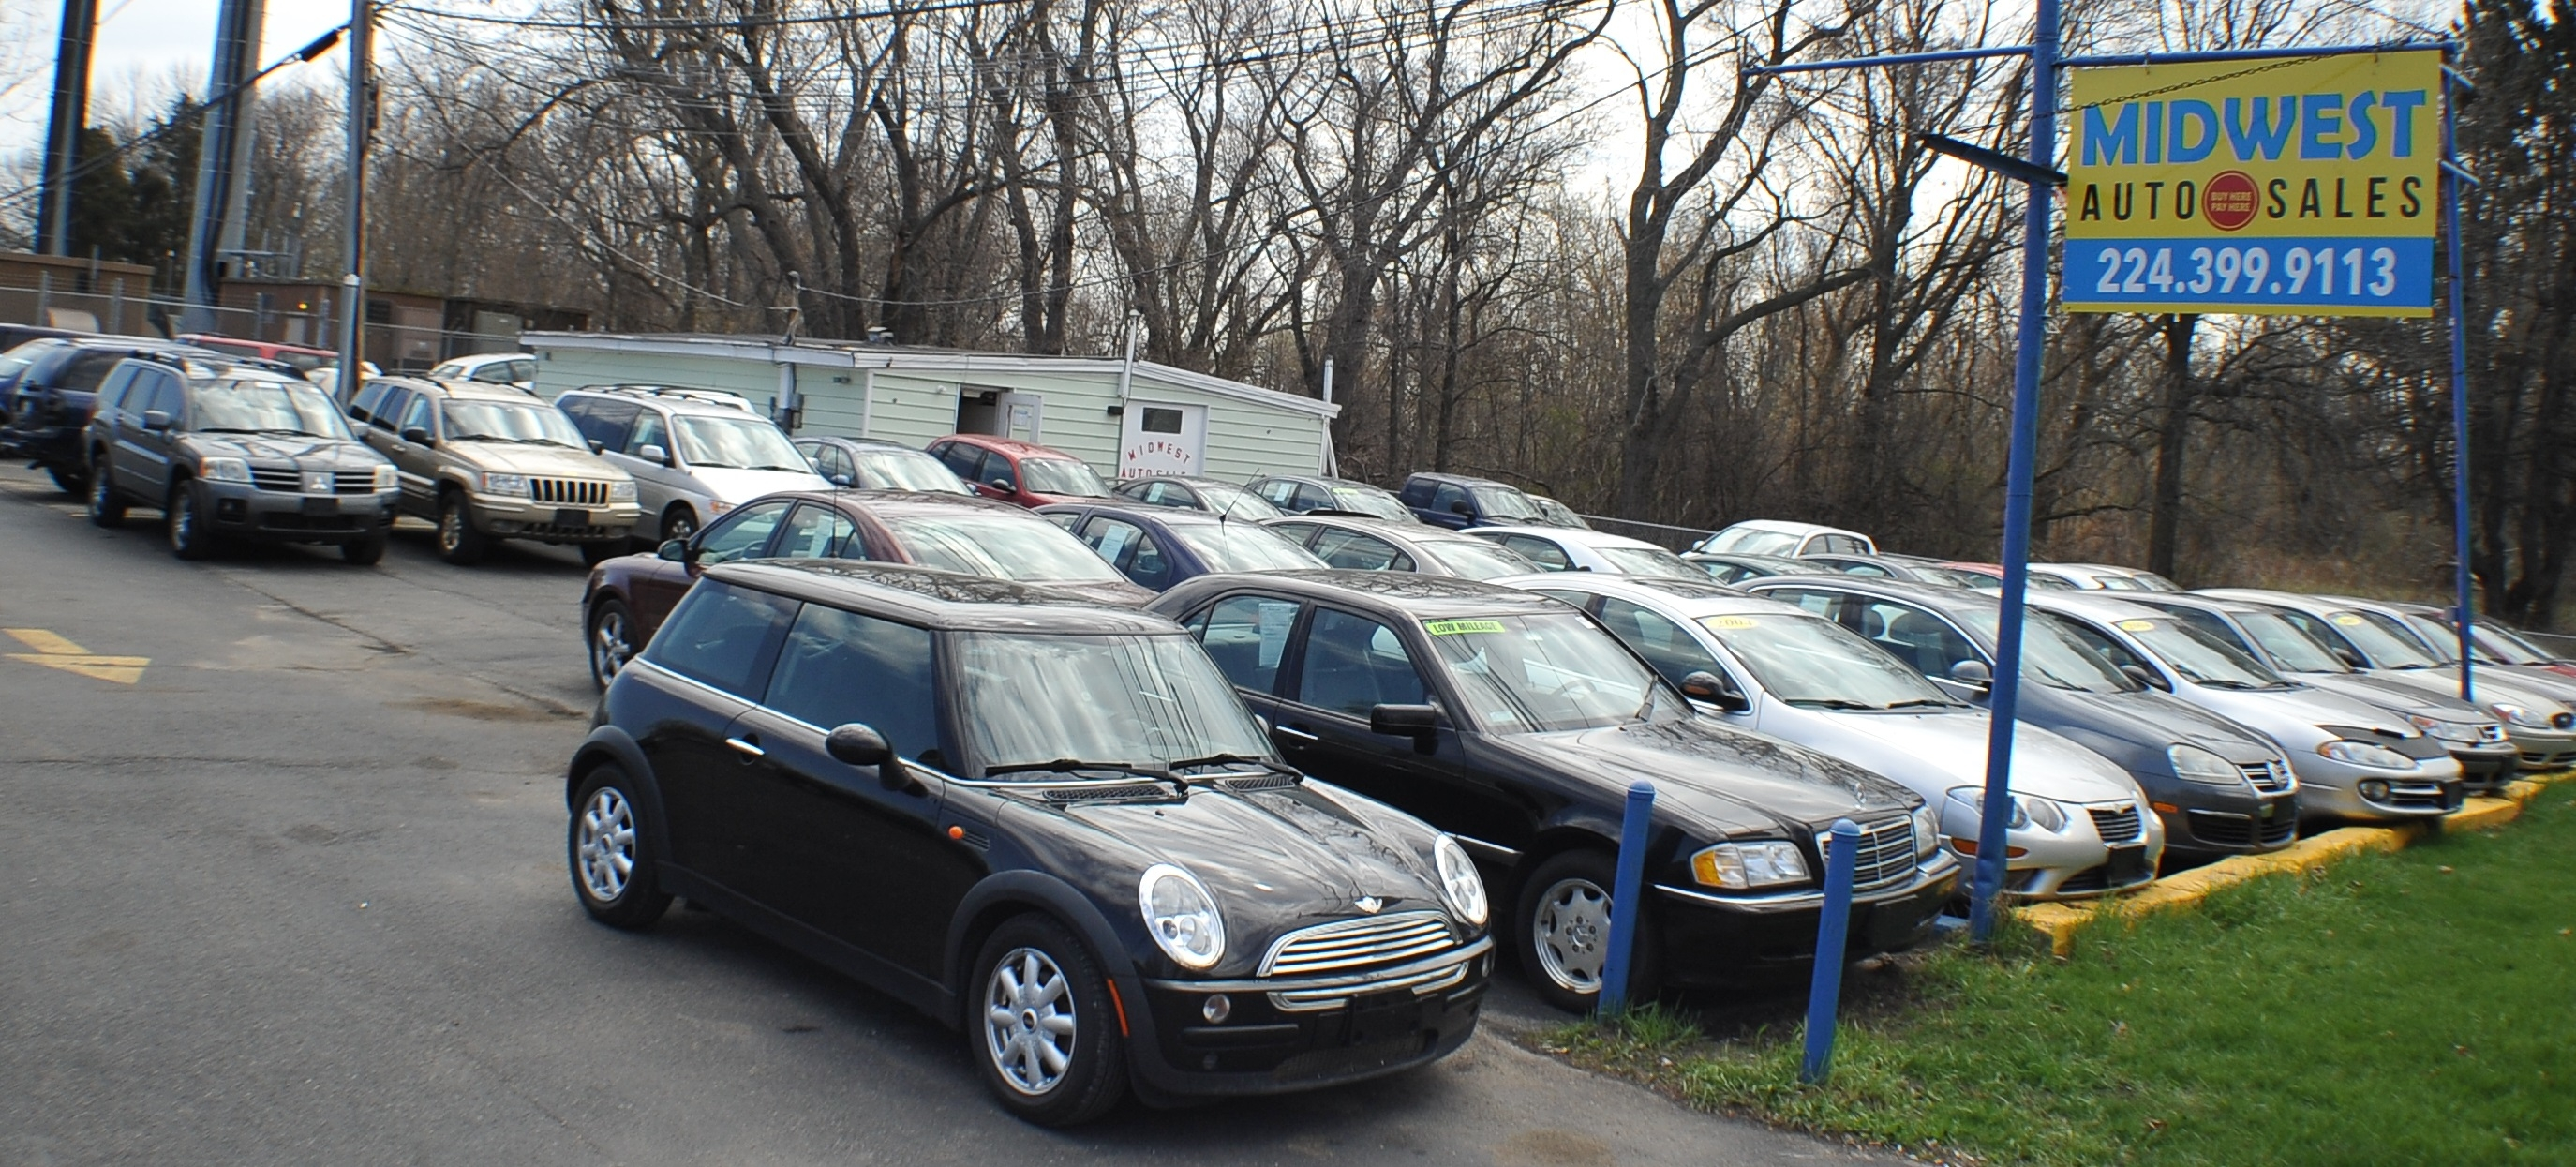 Midwest Auto sales Beach Park Illinois Best used car dealer first time buyers